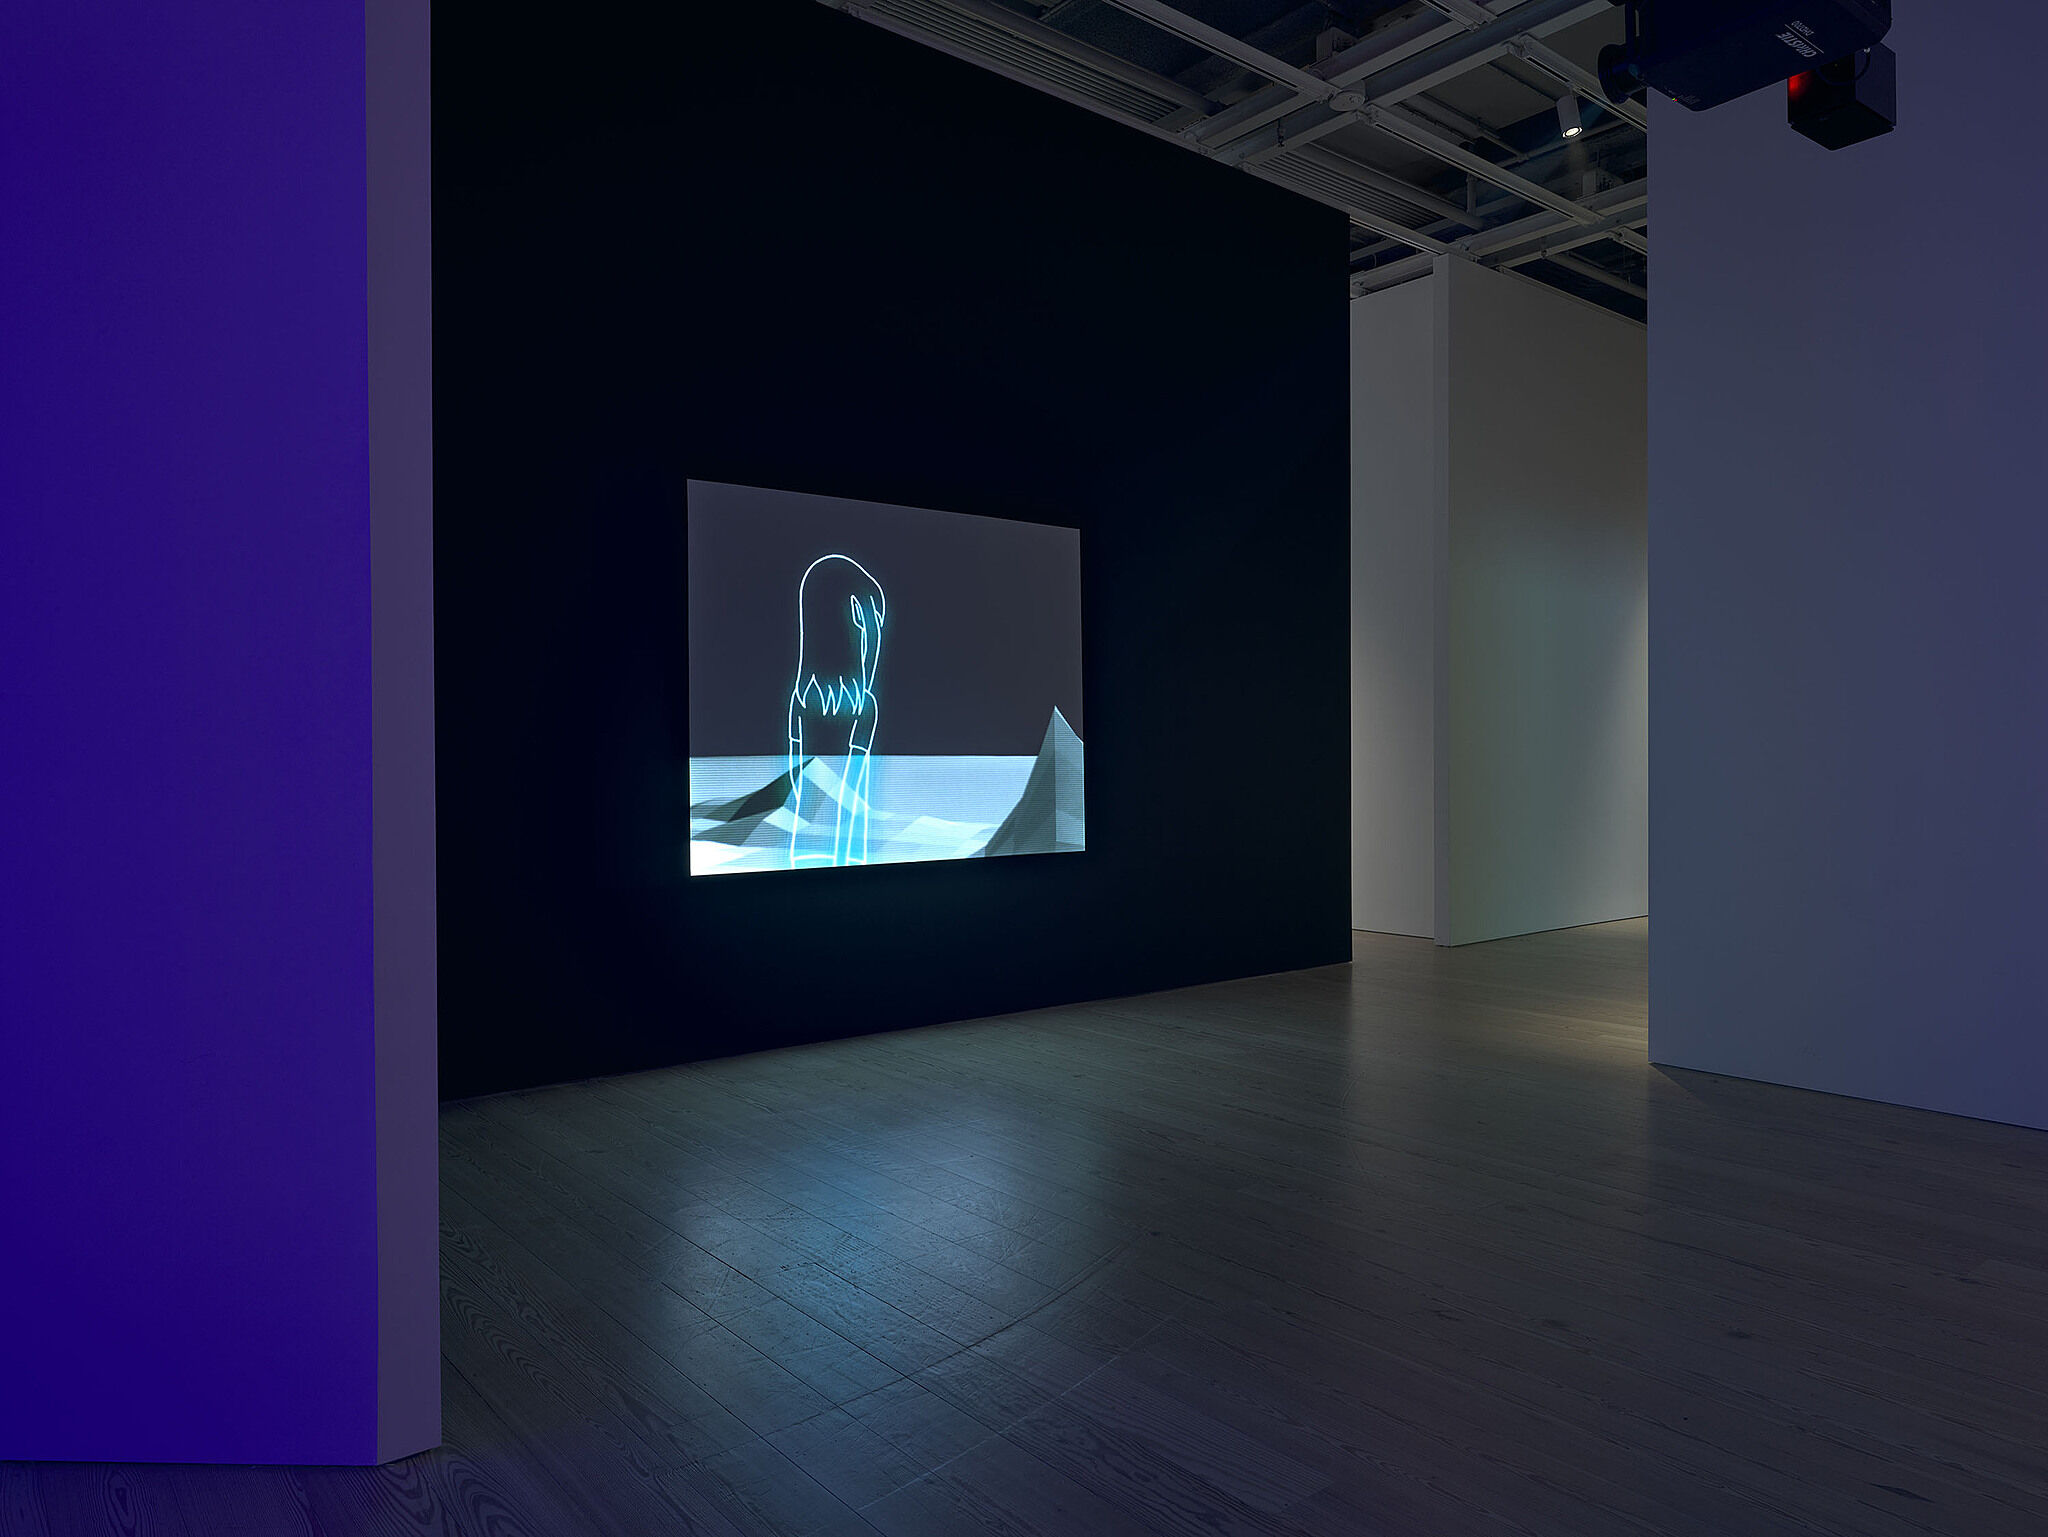 A video installation in a gallery with purple walls.